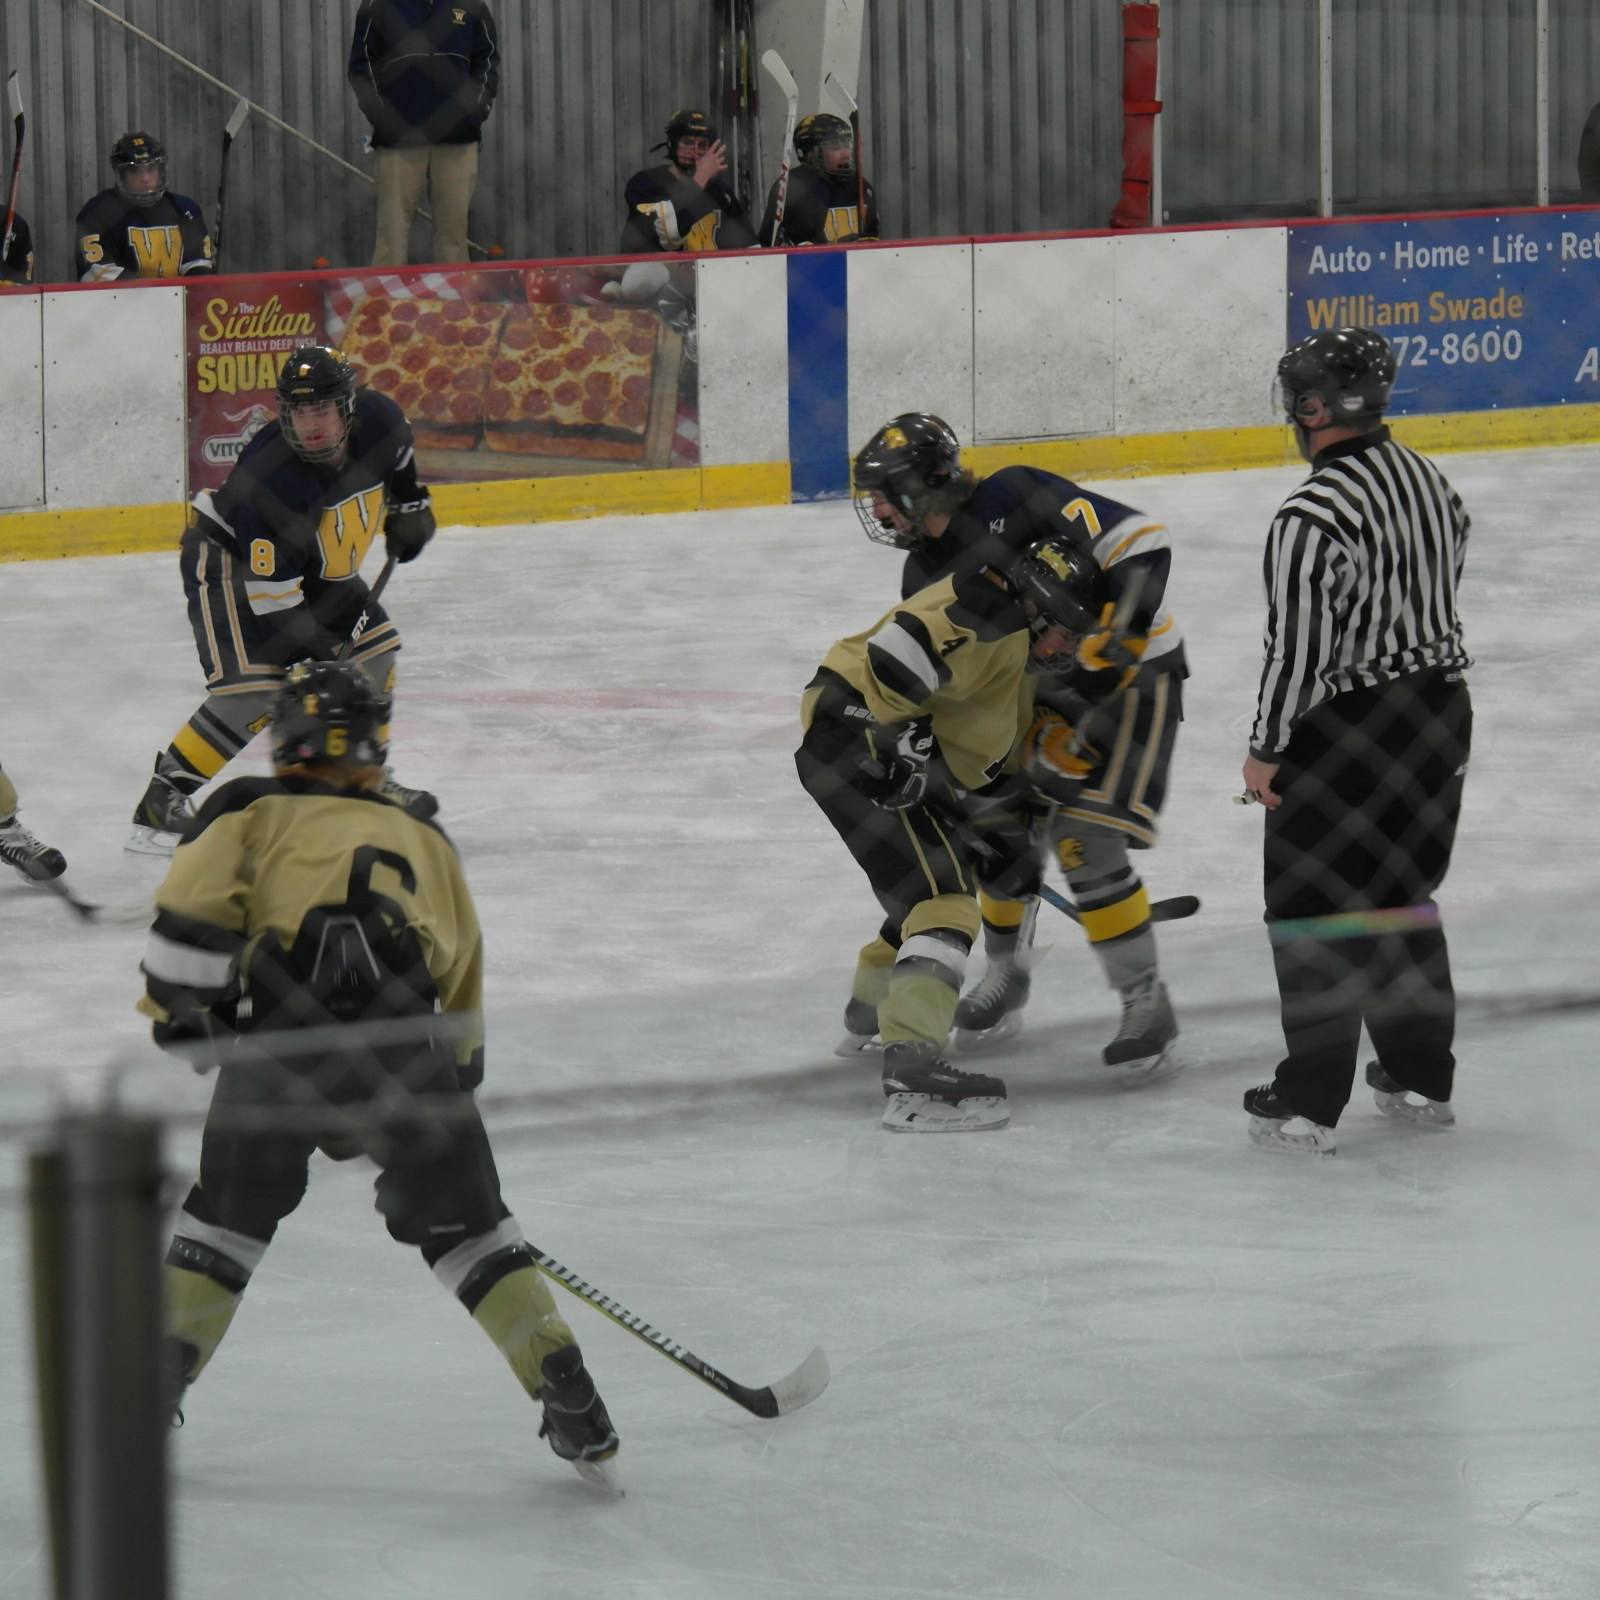 Freshman Patrick Hanley in a face off | Picture Credit: Emily Swick